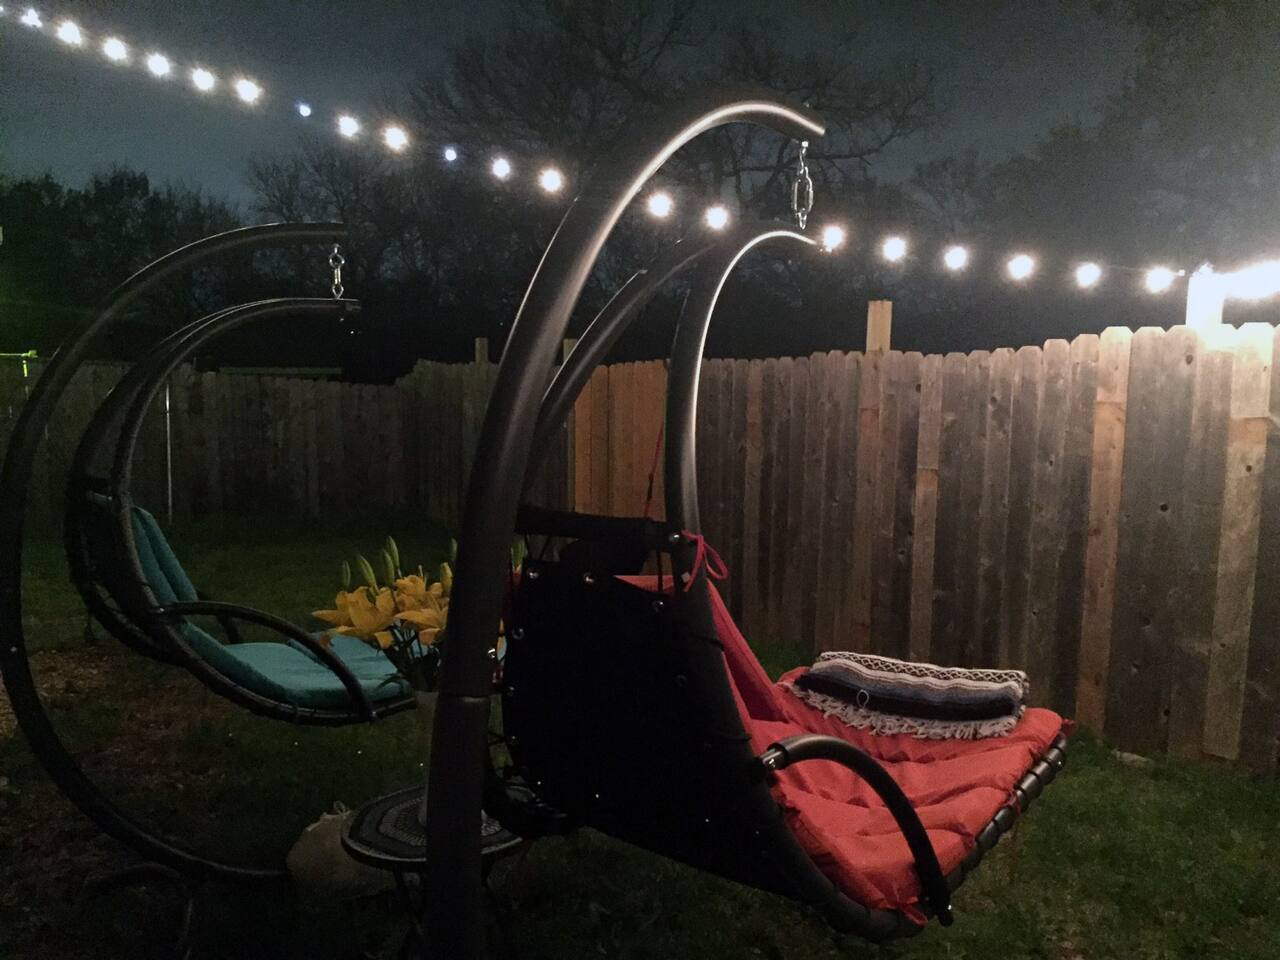 Back yard with hanging lounge chairs